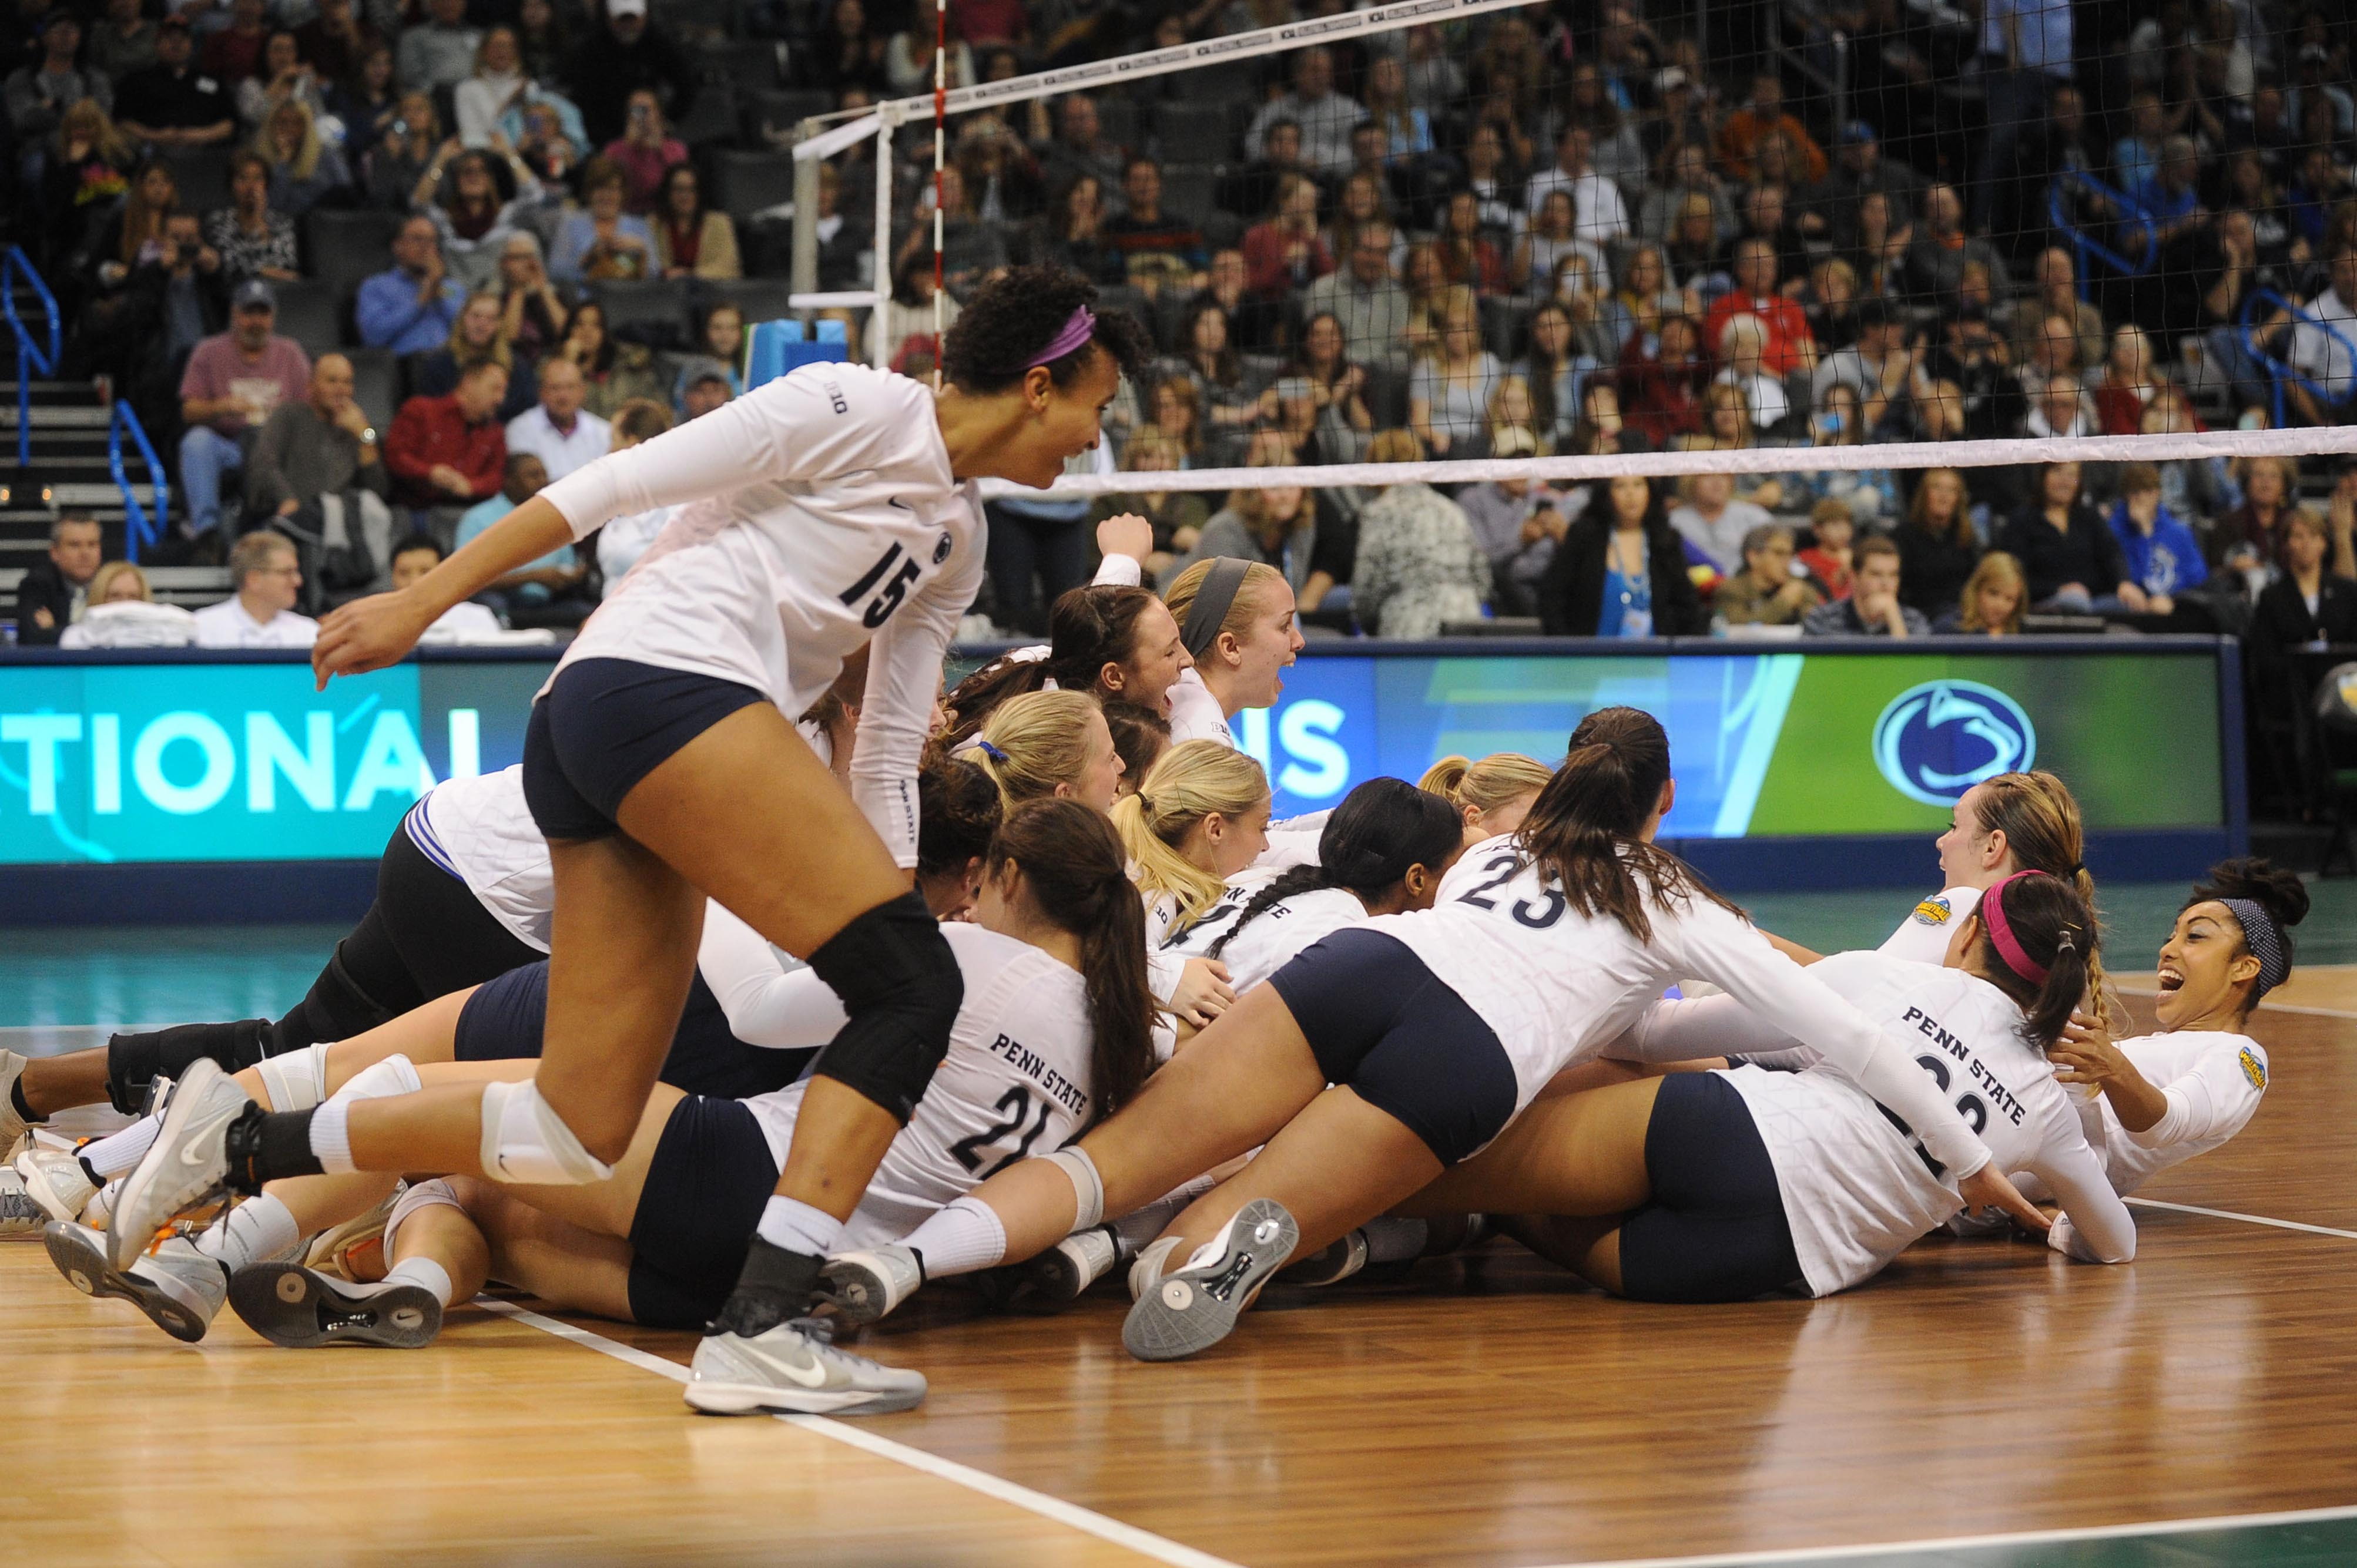 Gallery Penn State Volleyball Claims Seventh Ncaa Championship Big Ten Network